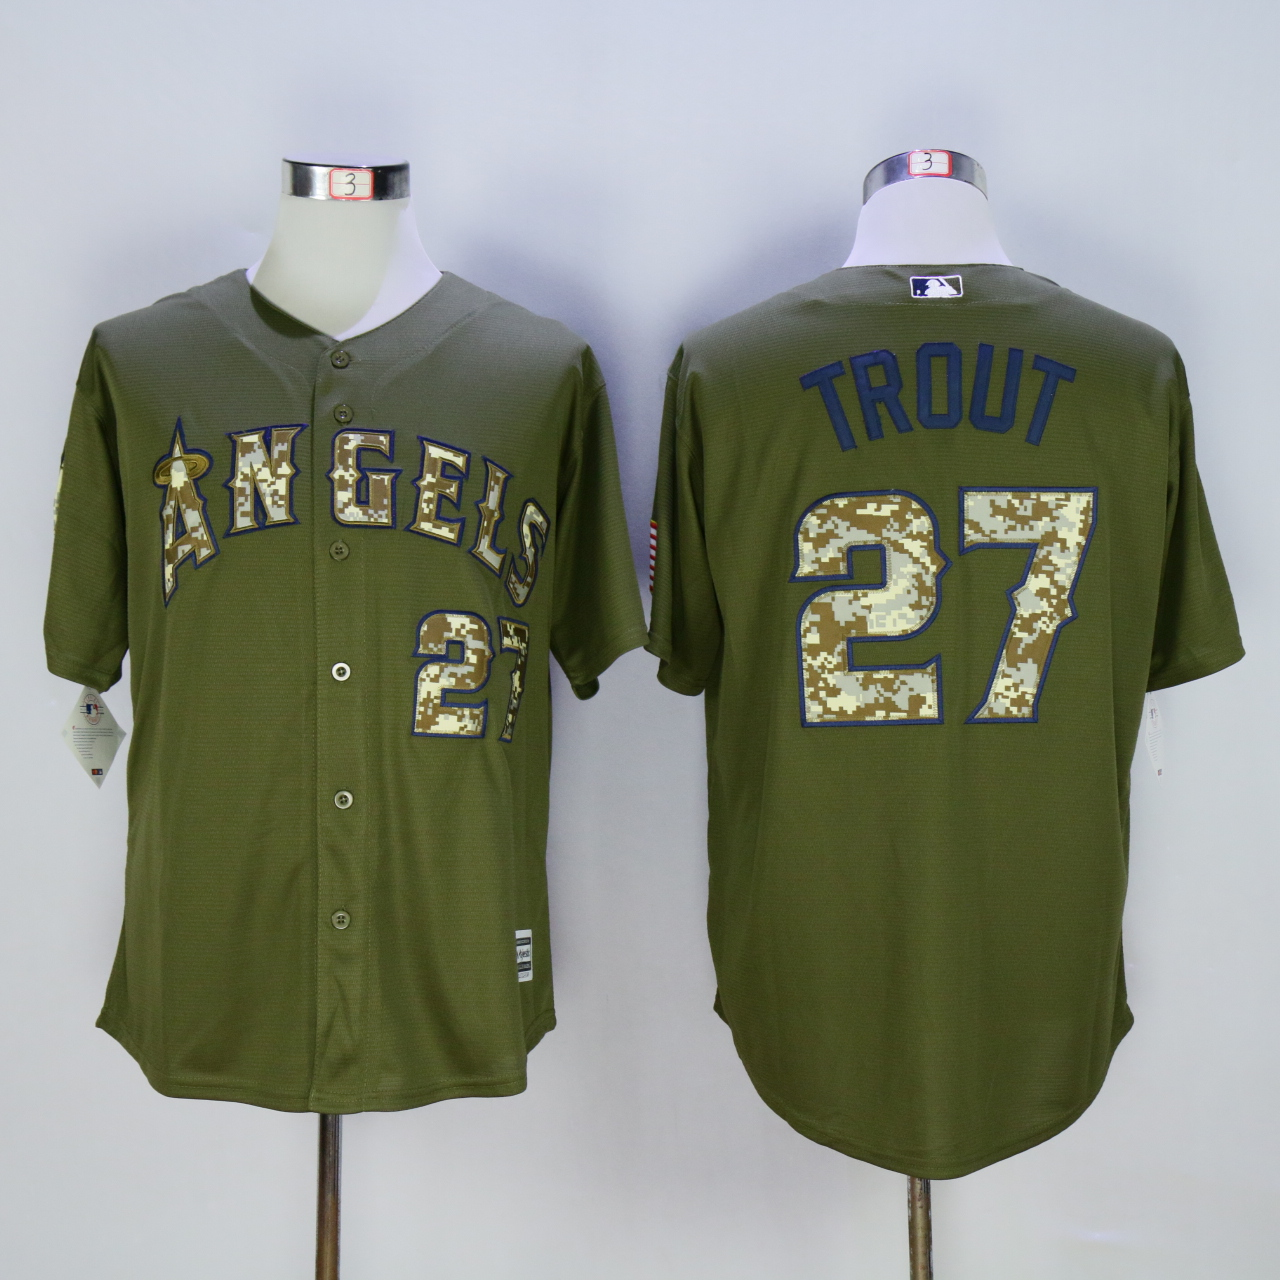 Men Los Angeles Angels 27 Trout Green MLB Jerseys